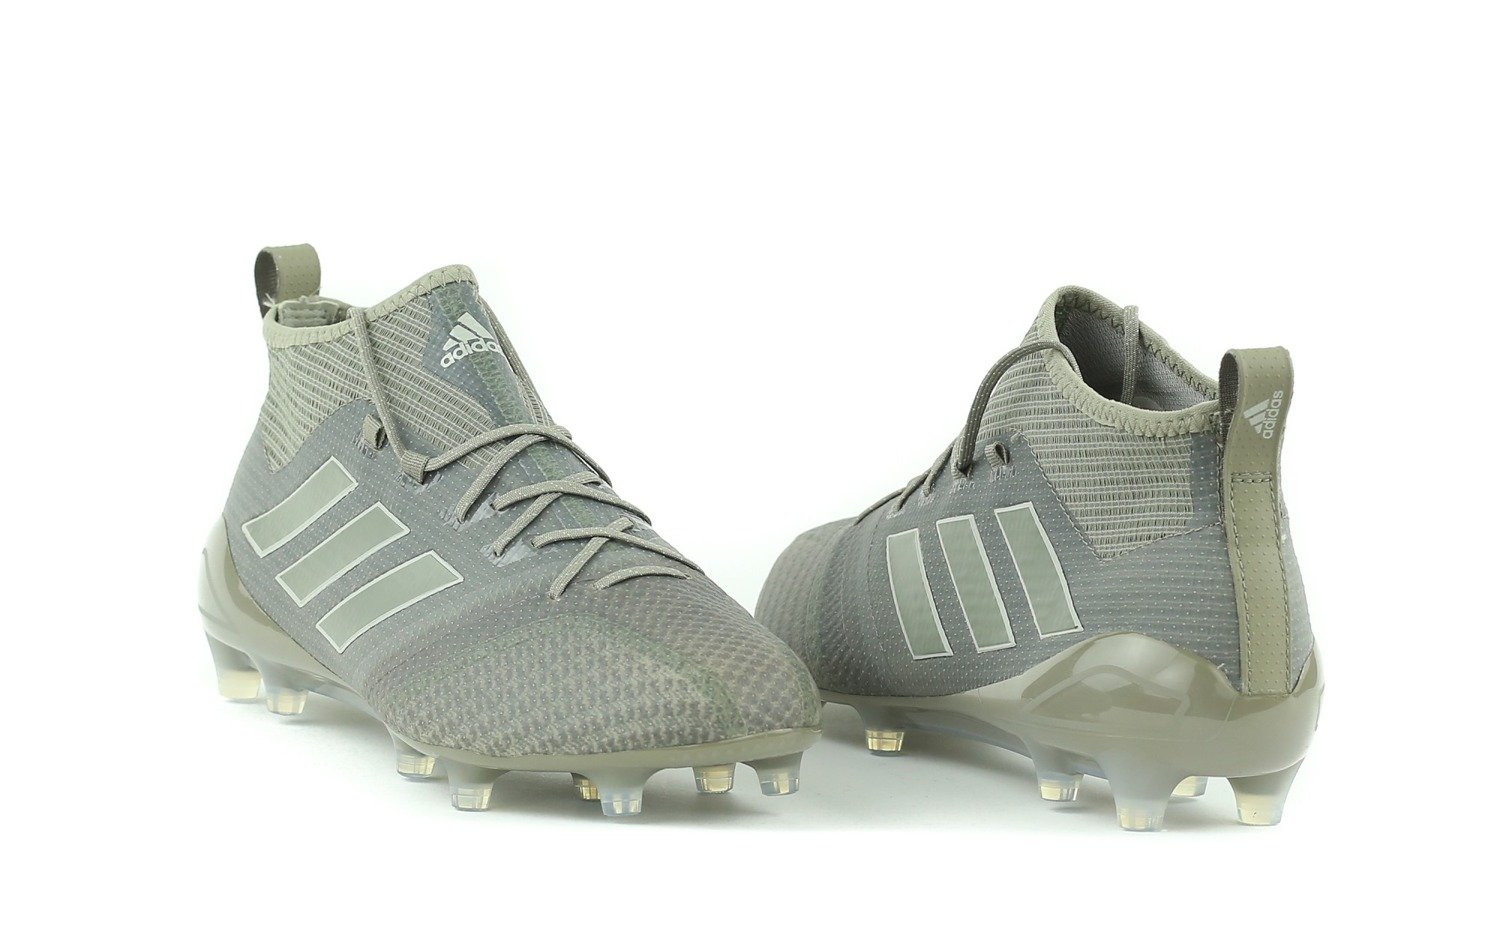 buty ADIDAS ACE 17.1 FG BY2189 | 4058025282419 4058025282365